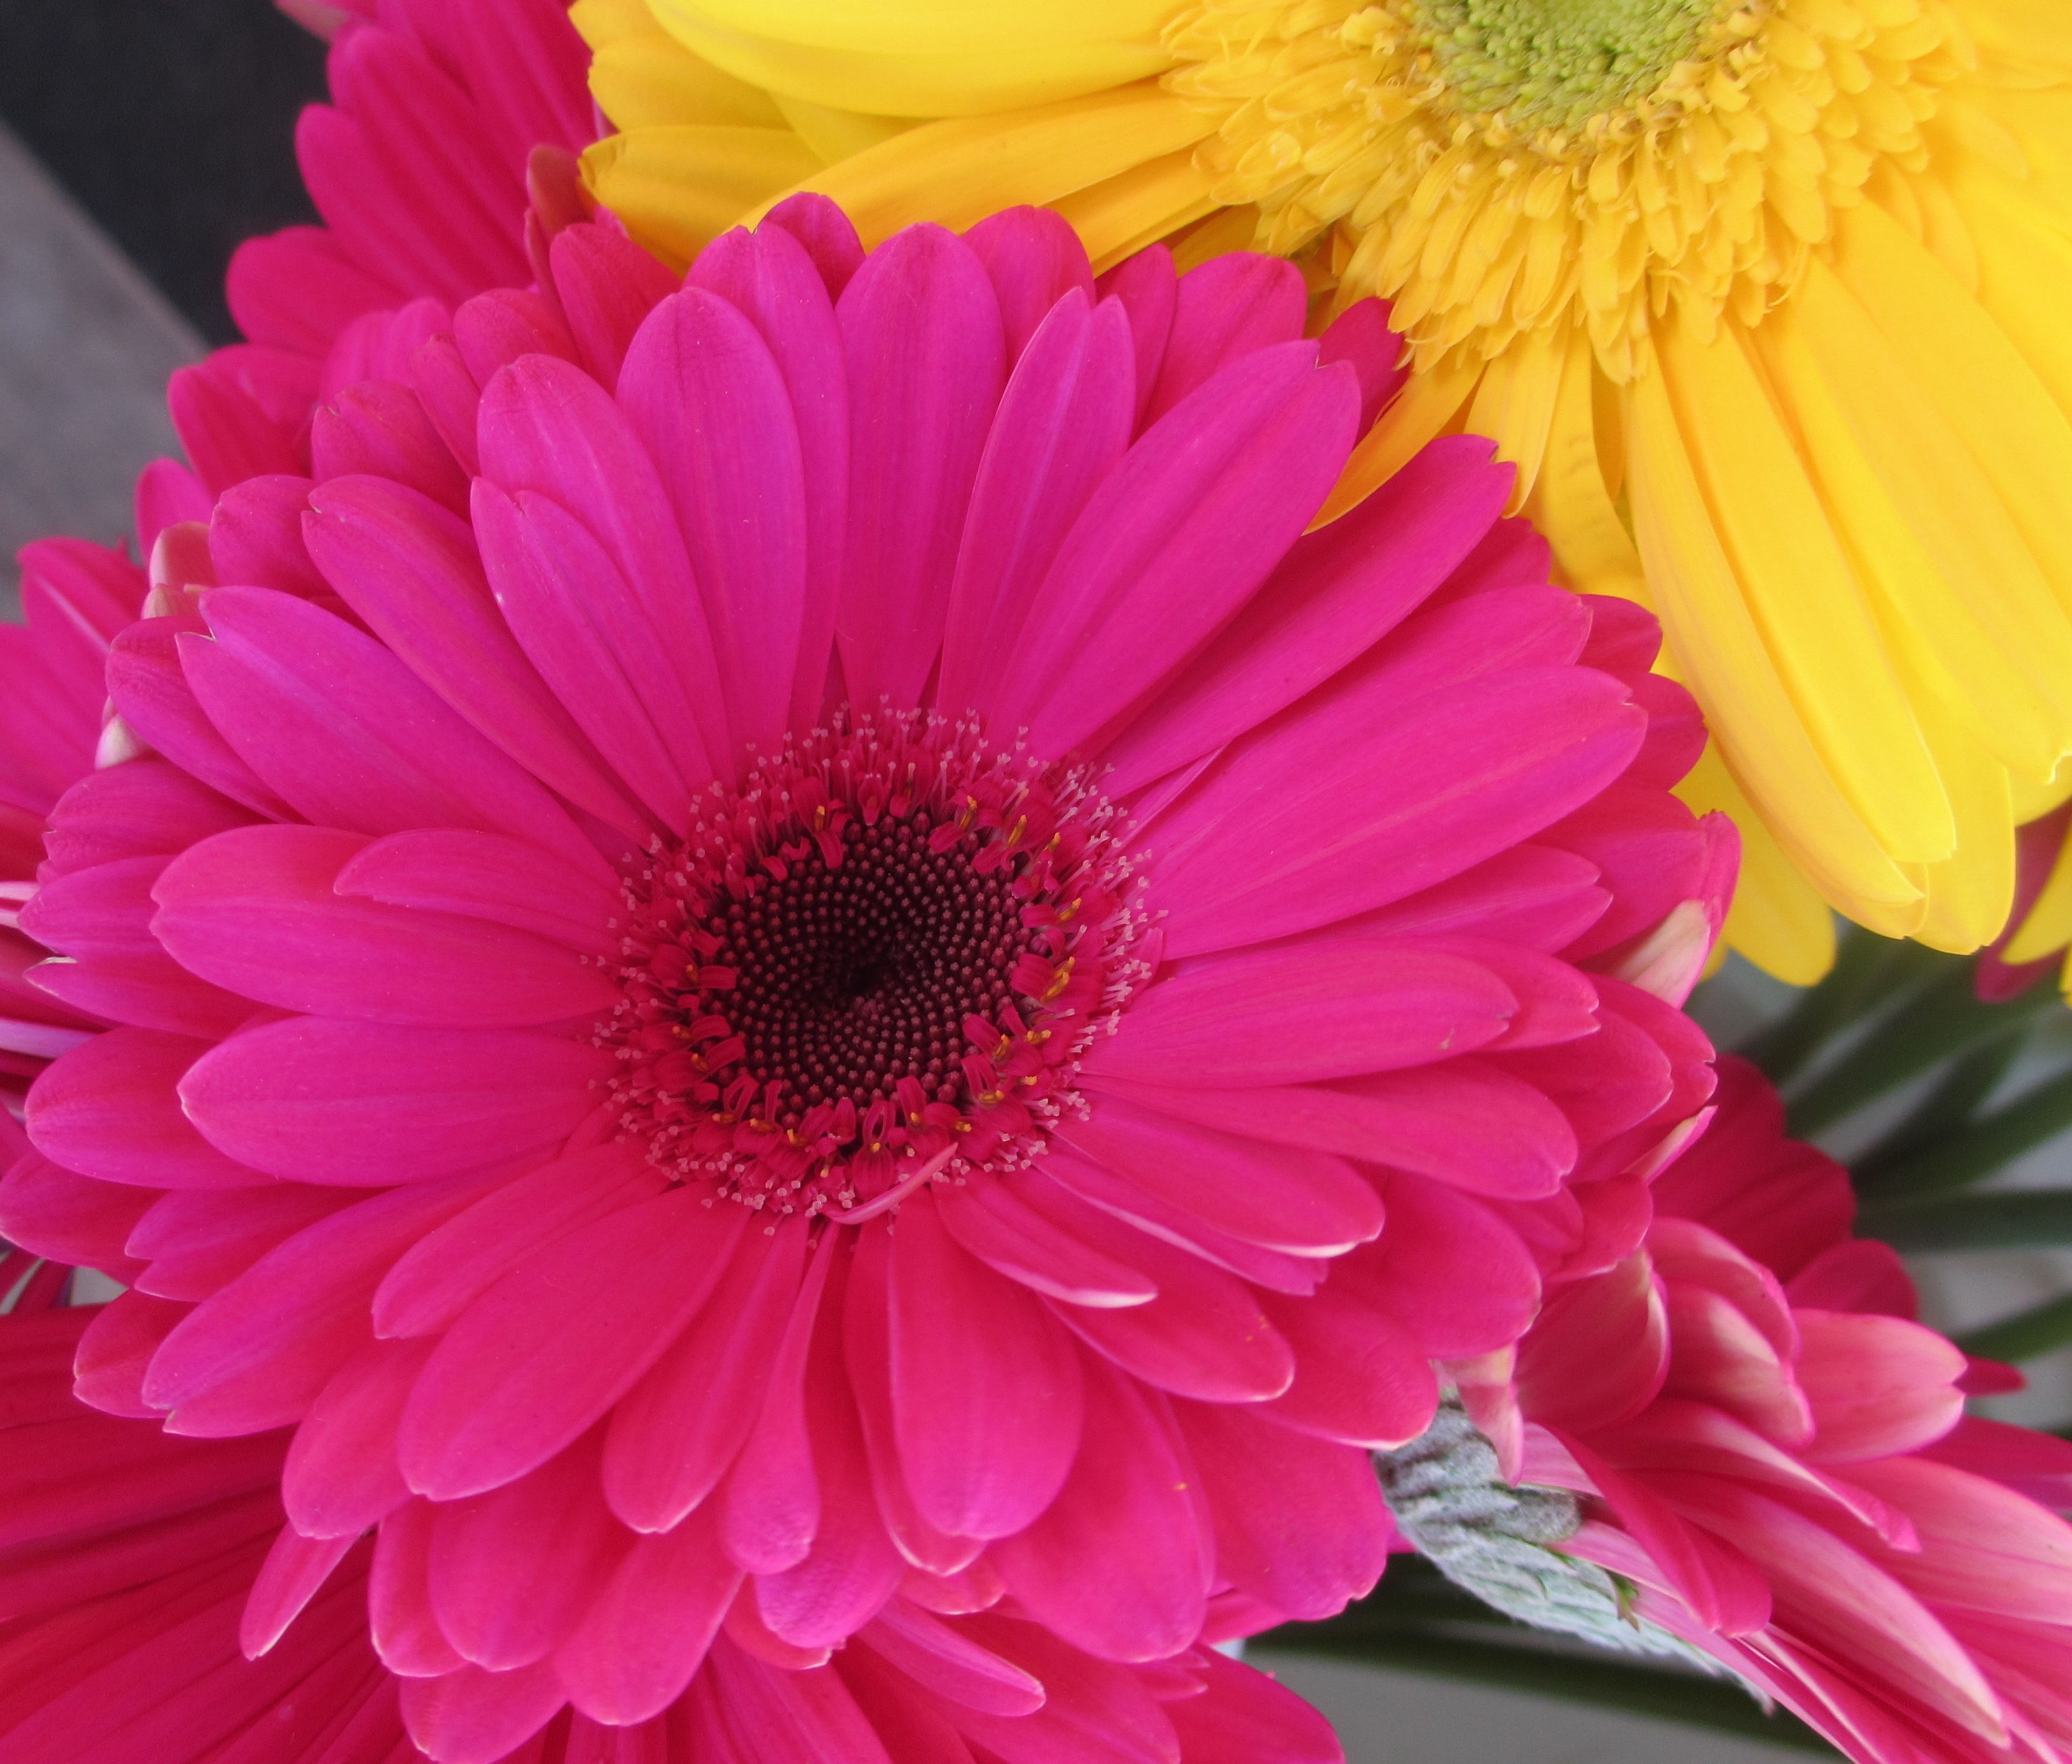 Gerber Daisy Becoming One Of My Favorite Flowers Gerber Daisies Daisy Love Gerbera Daisy